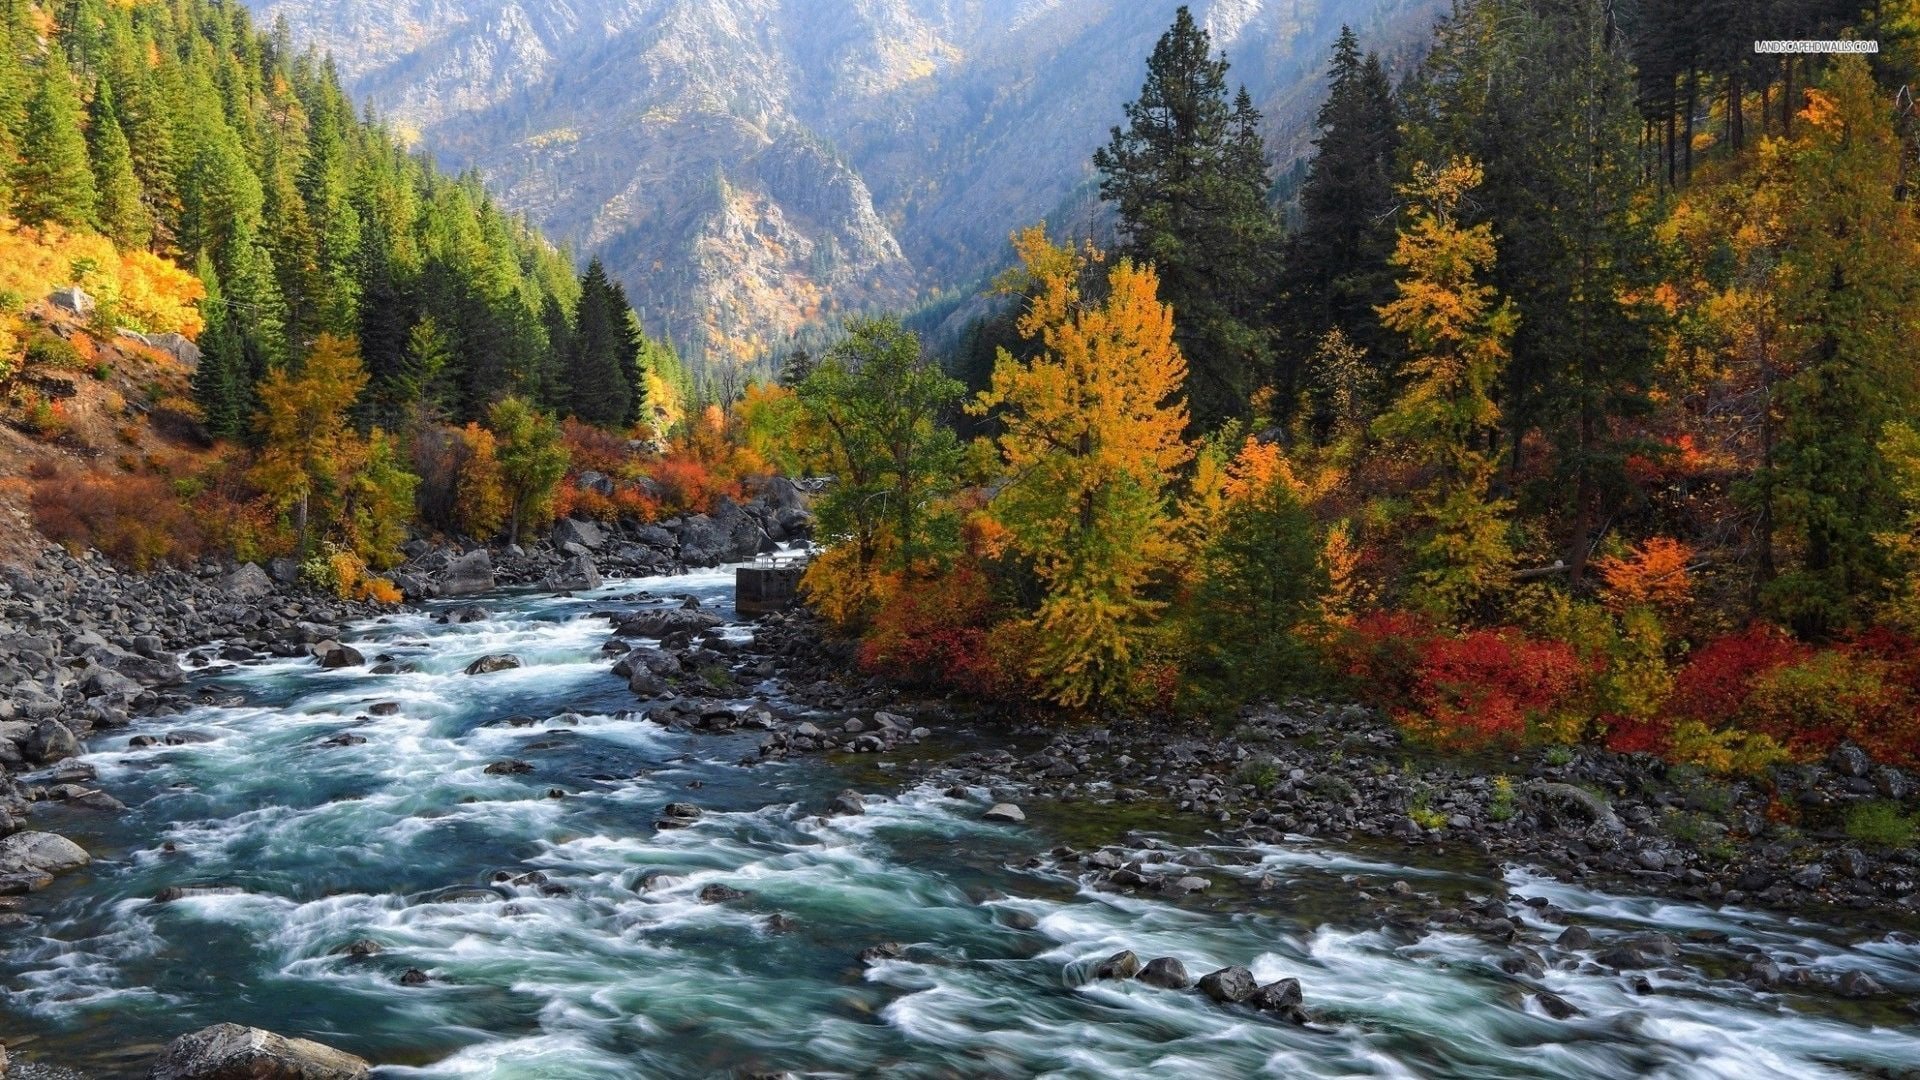 rapidly-flowing-river-in-the-mountains-1982-1920x1080.jpg